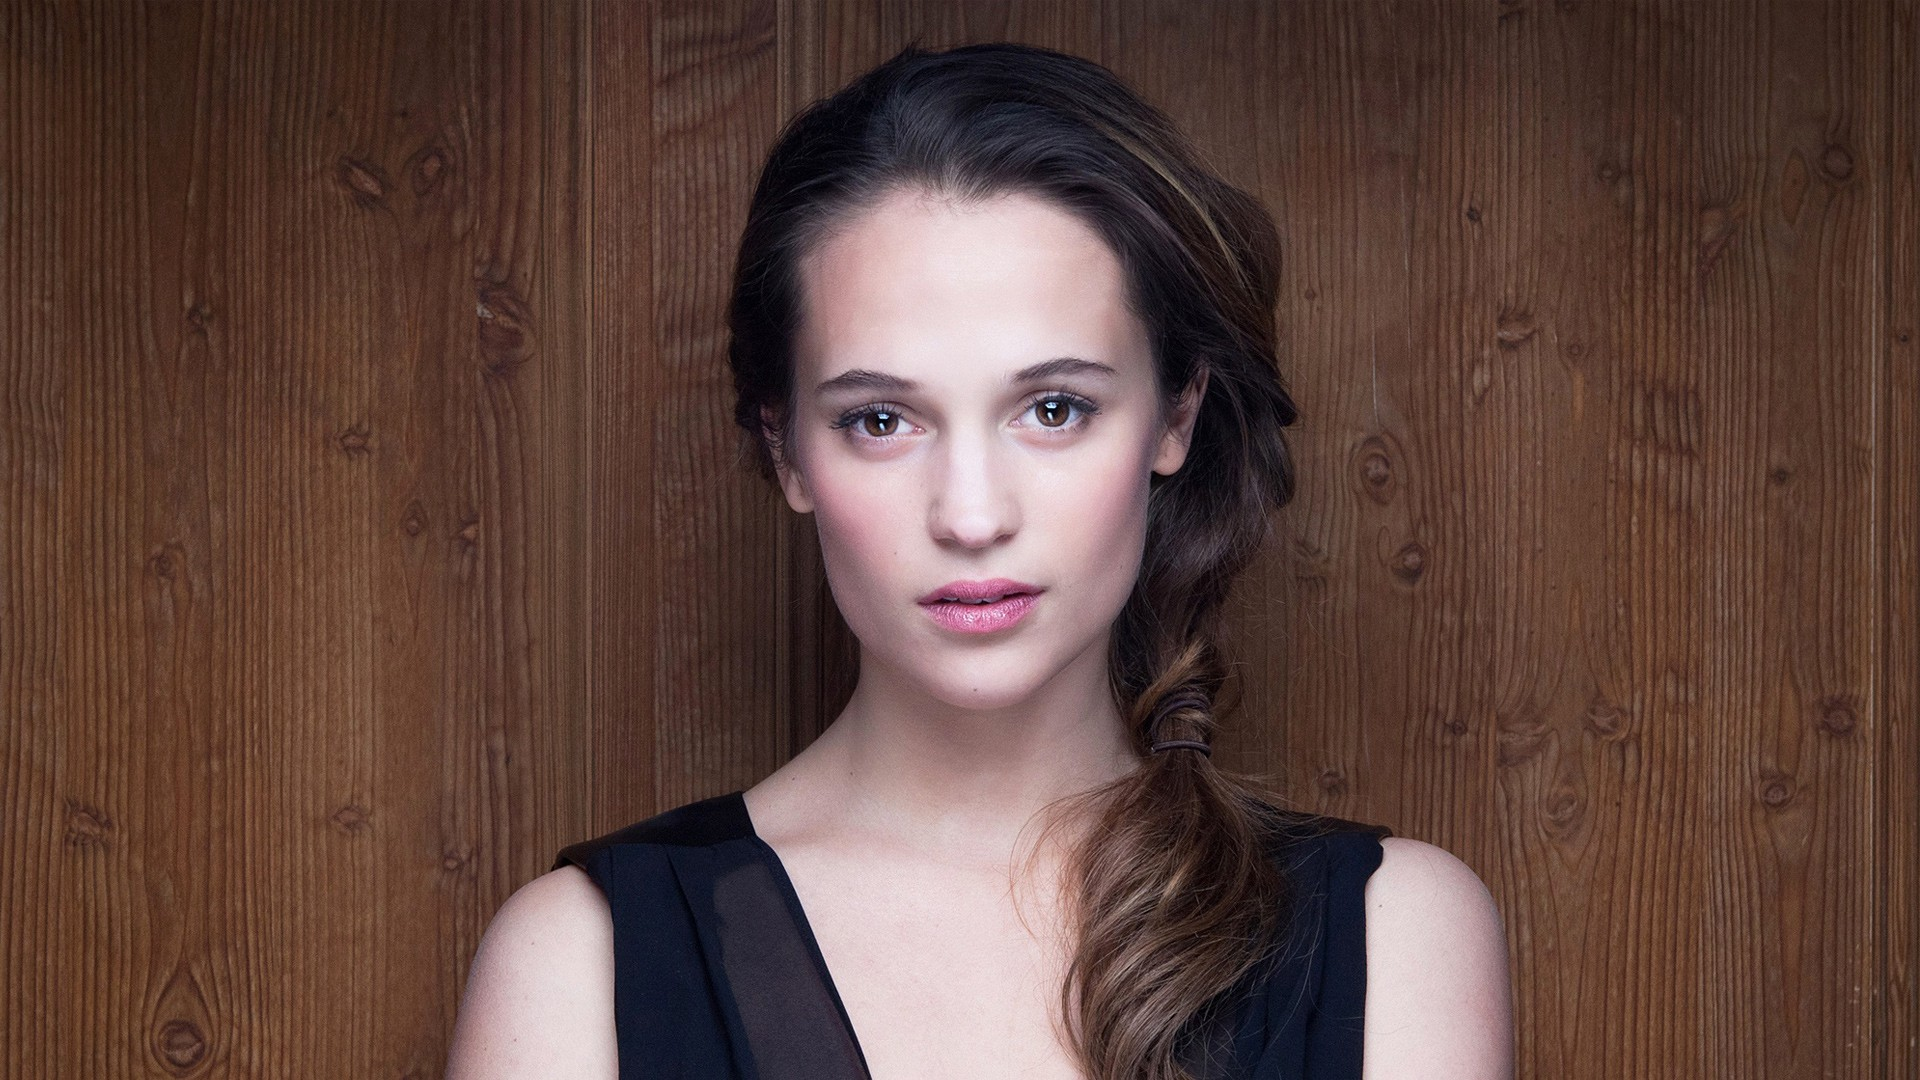 alicia vikander wallpaper background